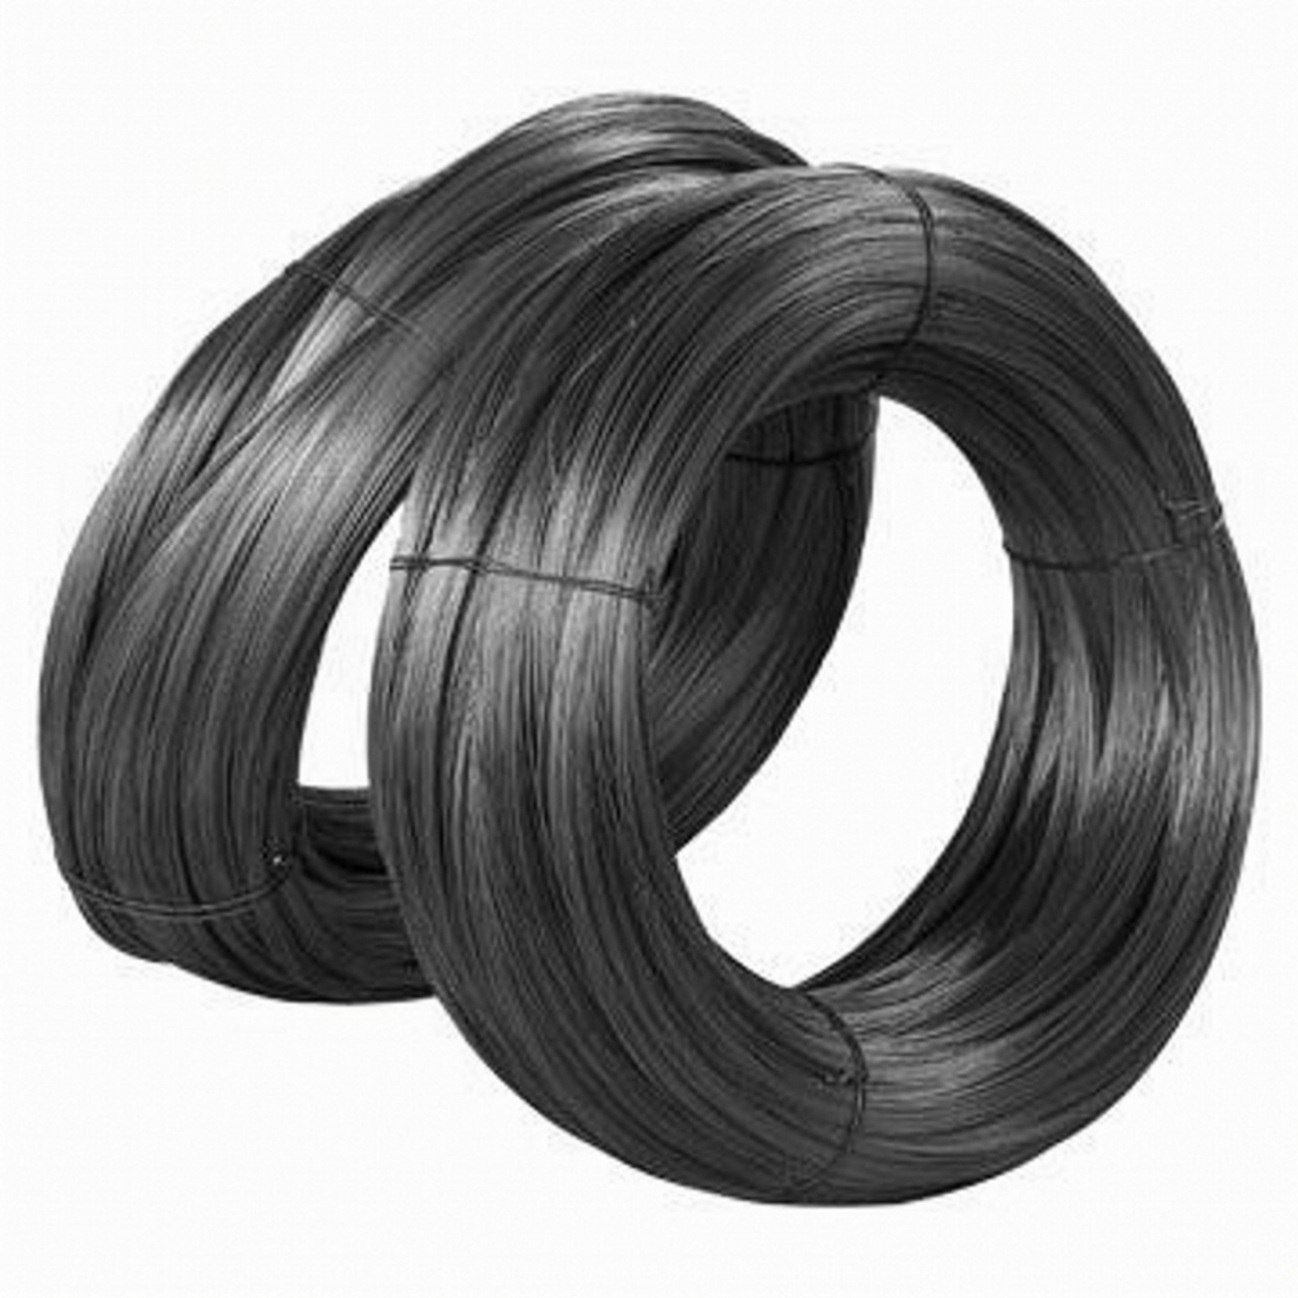 Black Annealed Wire : China black annealed wire photos pictures made in